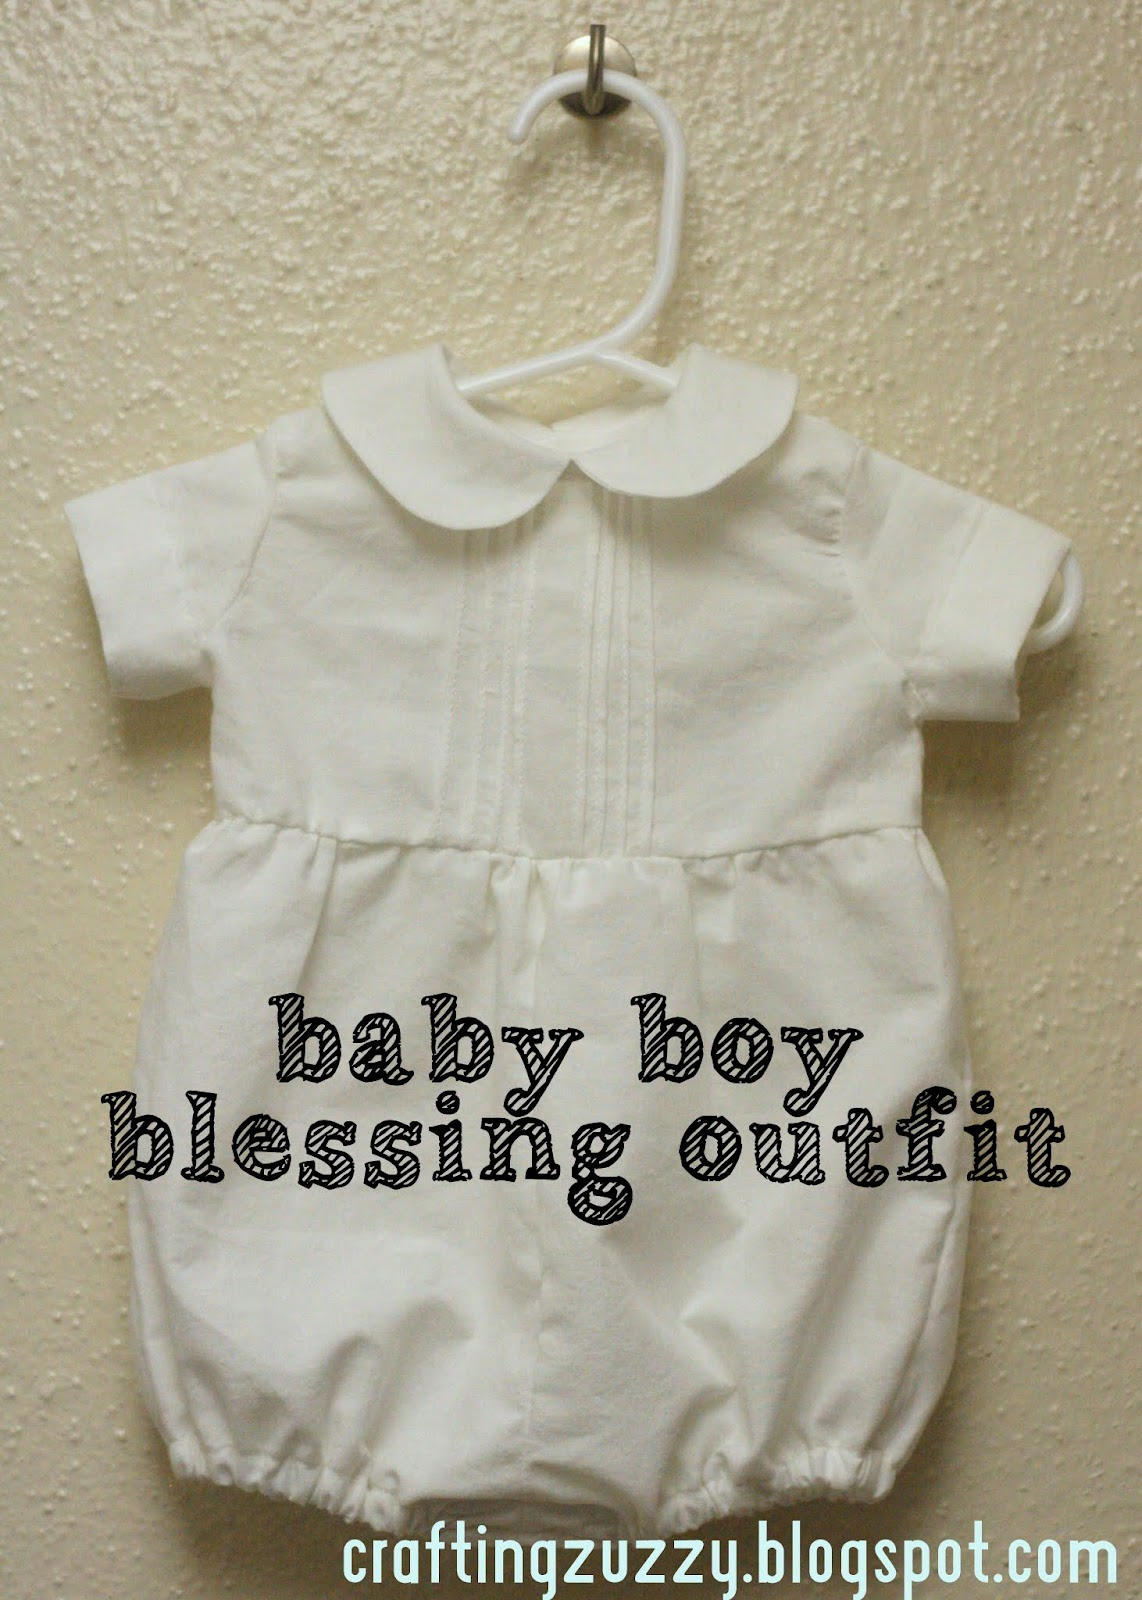 813579b201a5 Crafting Zuzzy  Vintage Style Blessing Outfit for Baby Boy